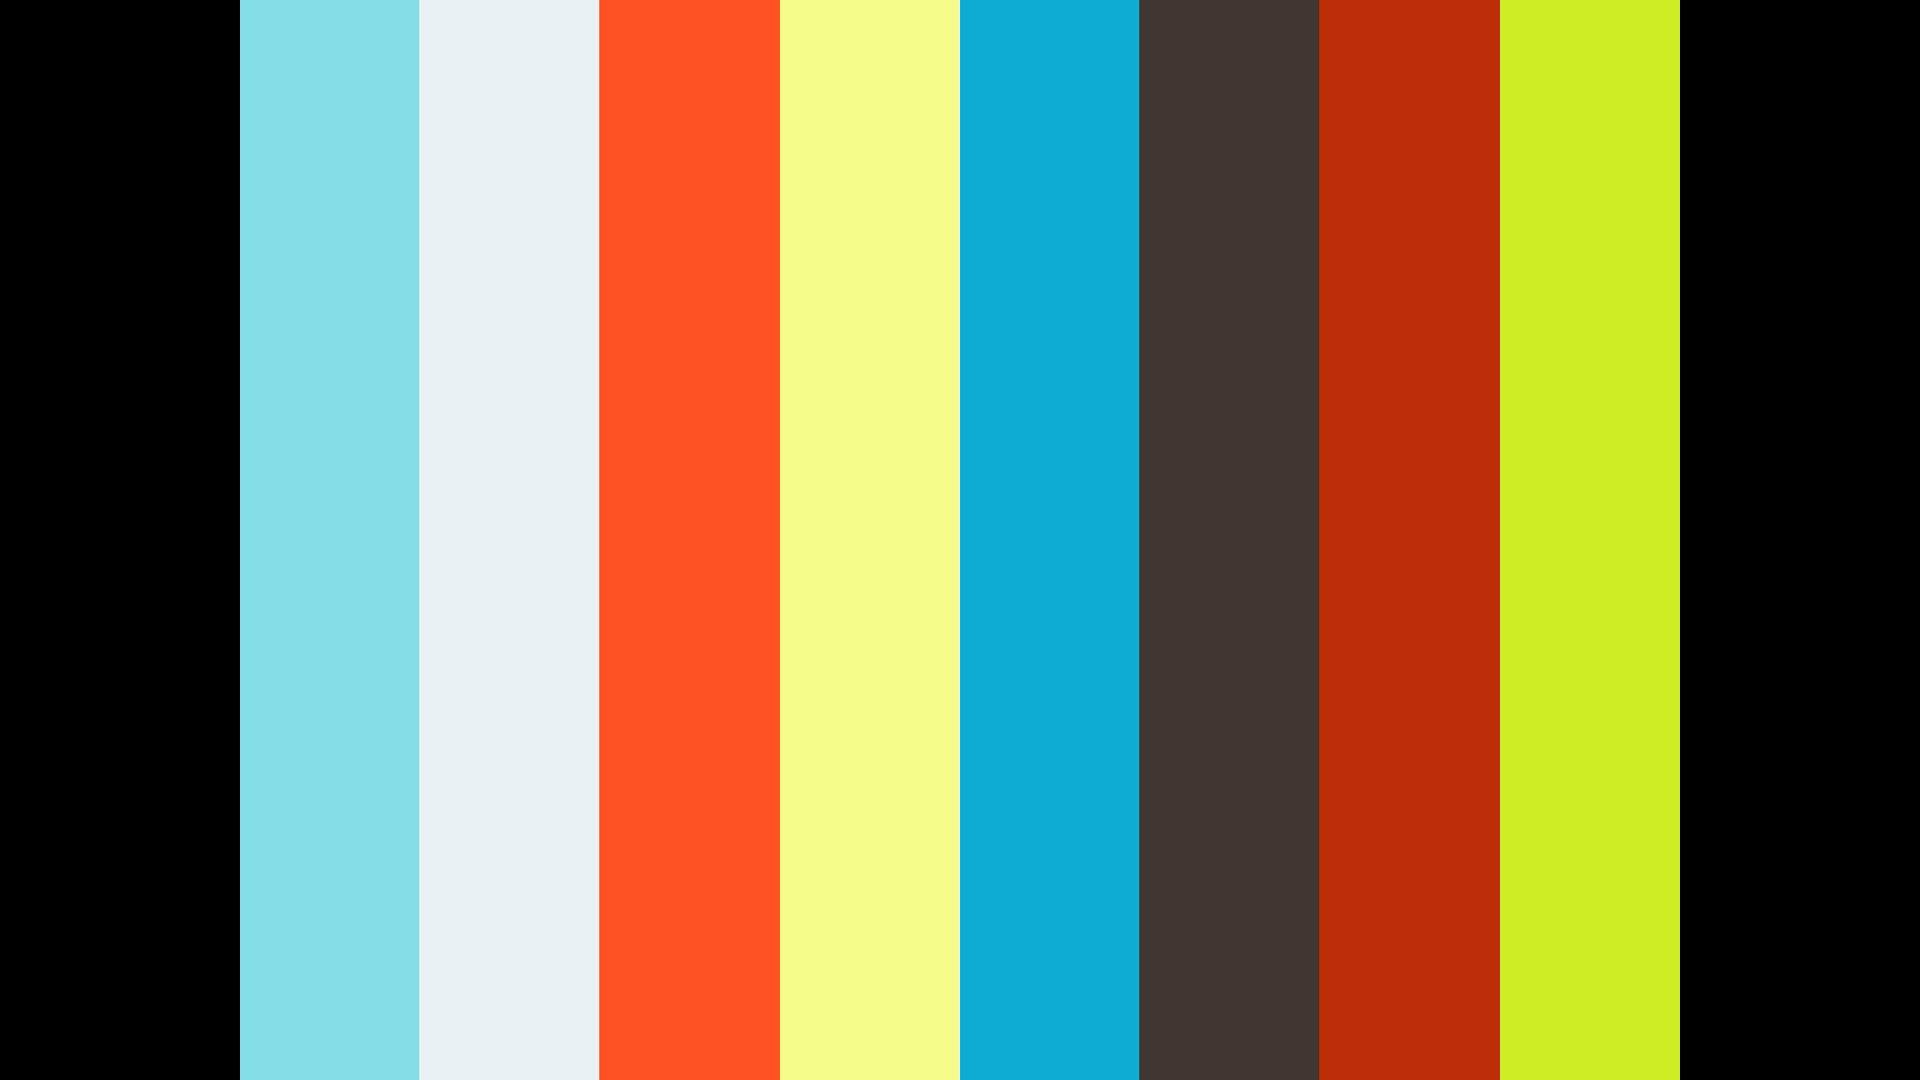 Whitworth Young Contemporaries: The Journey